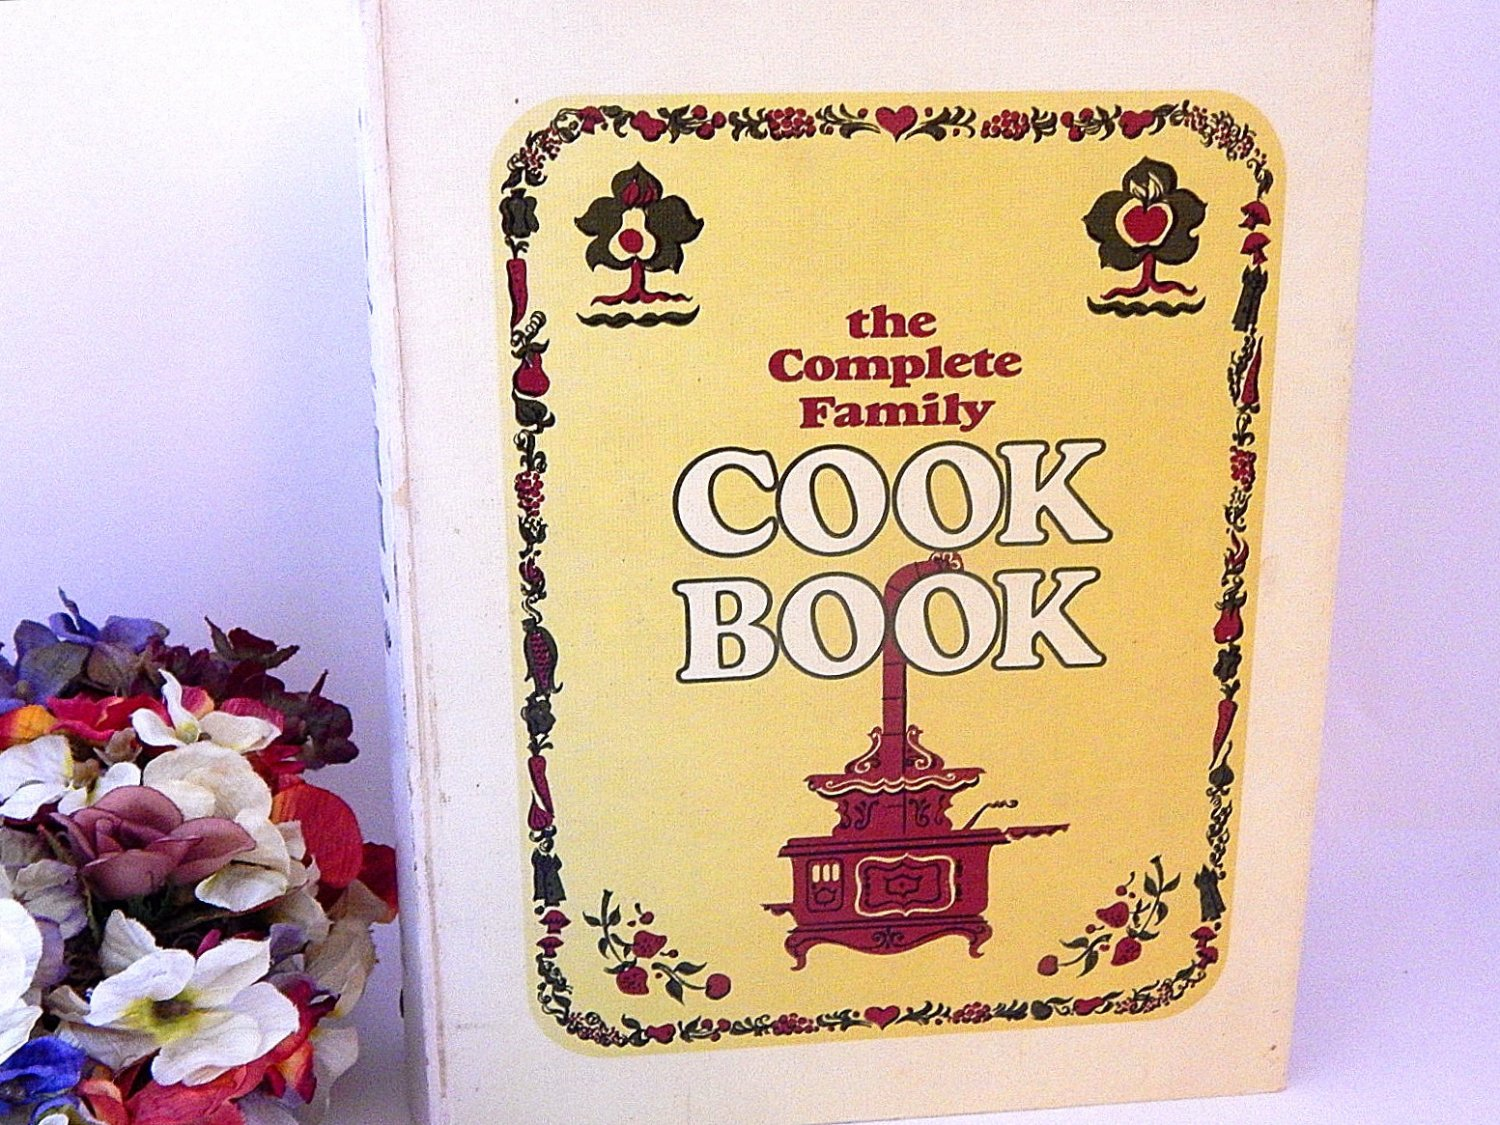 The Complete Family Cookbook 1969 3 Ring Recipe Book Mid-Century American Food Cooking Baking Guide